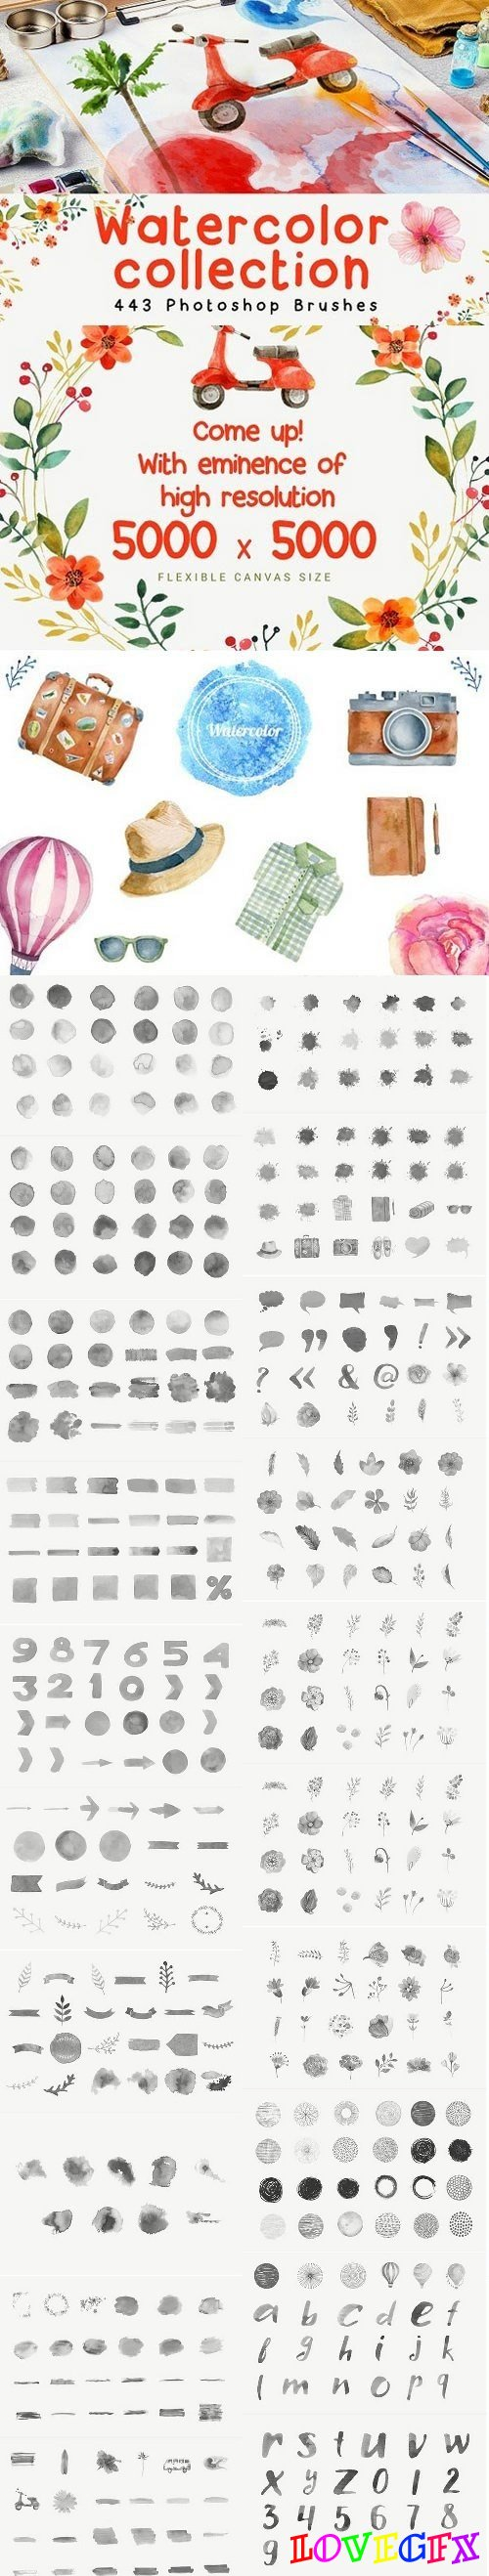 443 Photoshop Brushes 1529124